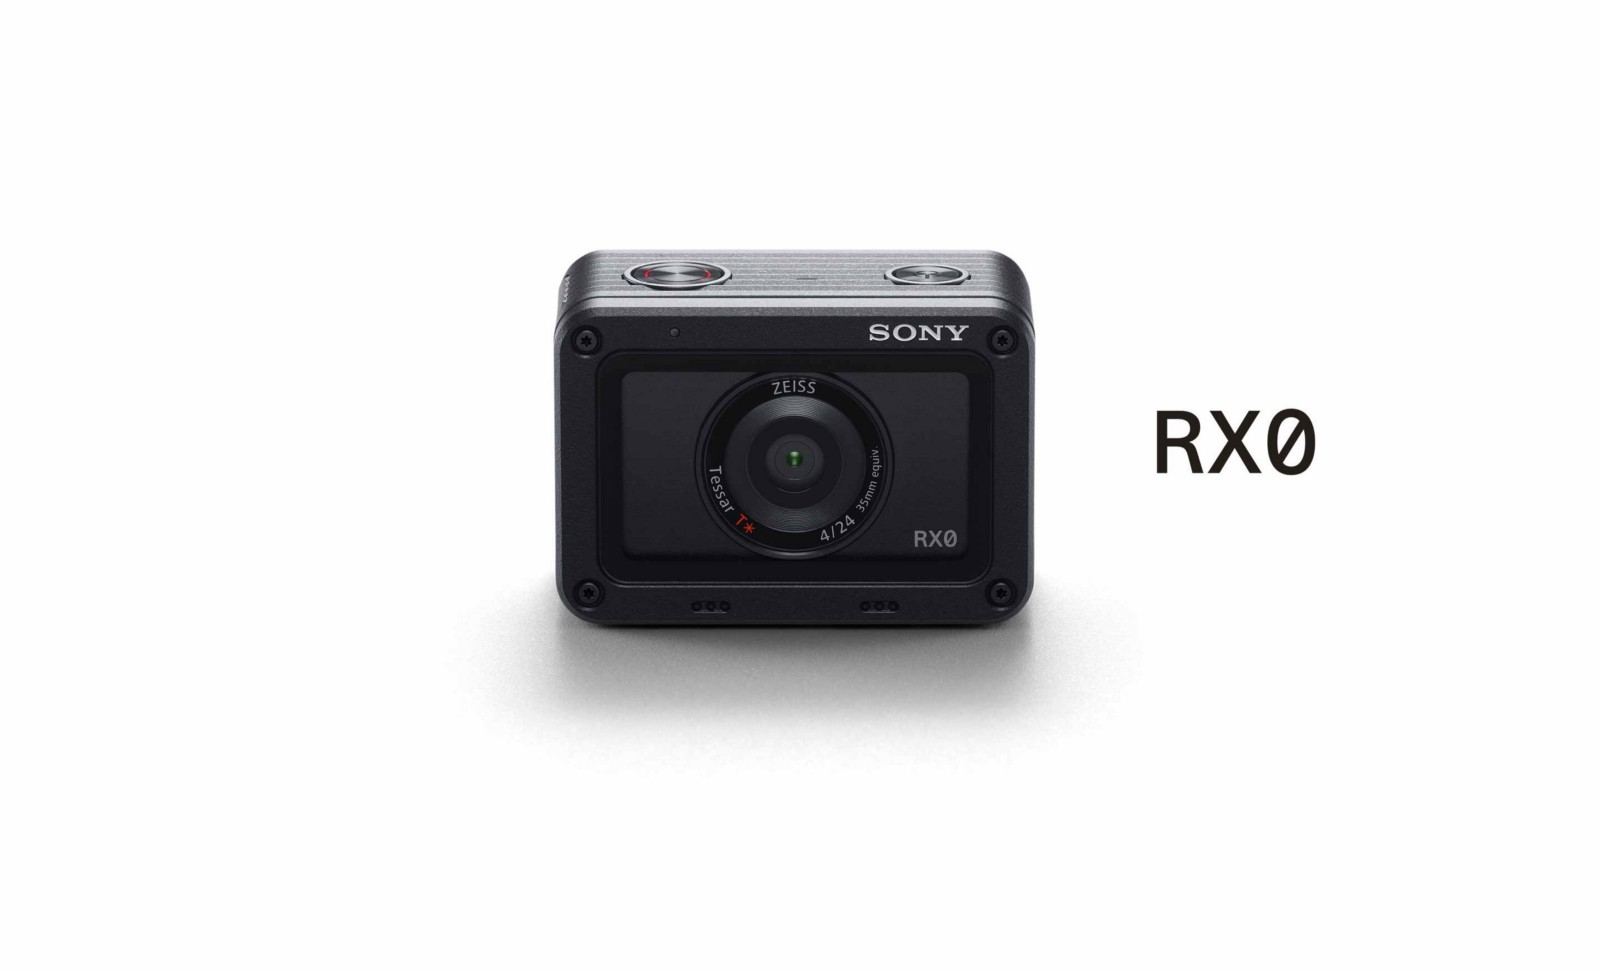 Right Off The Bat It Should Be Known That Sony RX0 Is Priced At 699 Which 300 More Than GoPro Hero5 But With Price Increase Comes